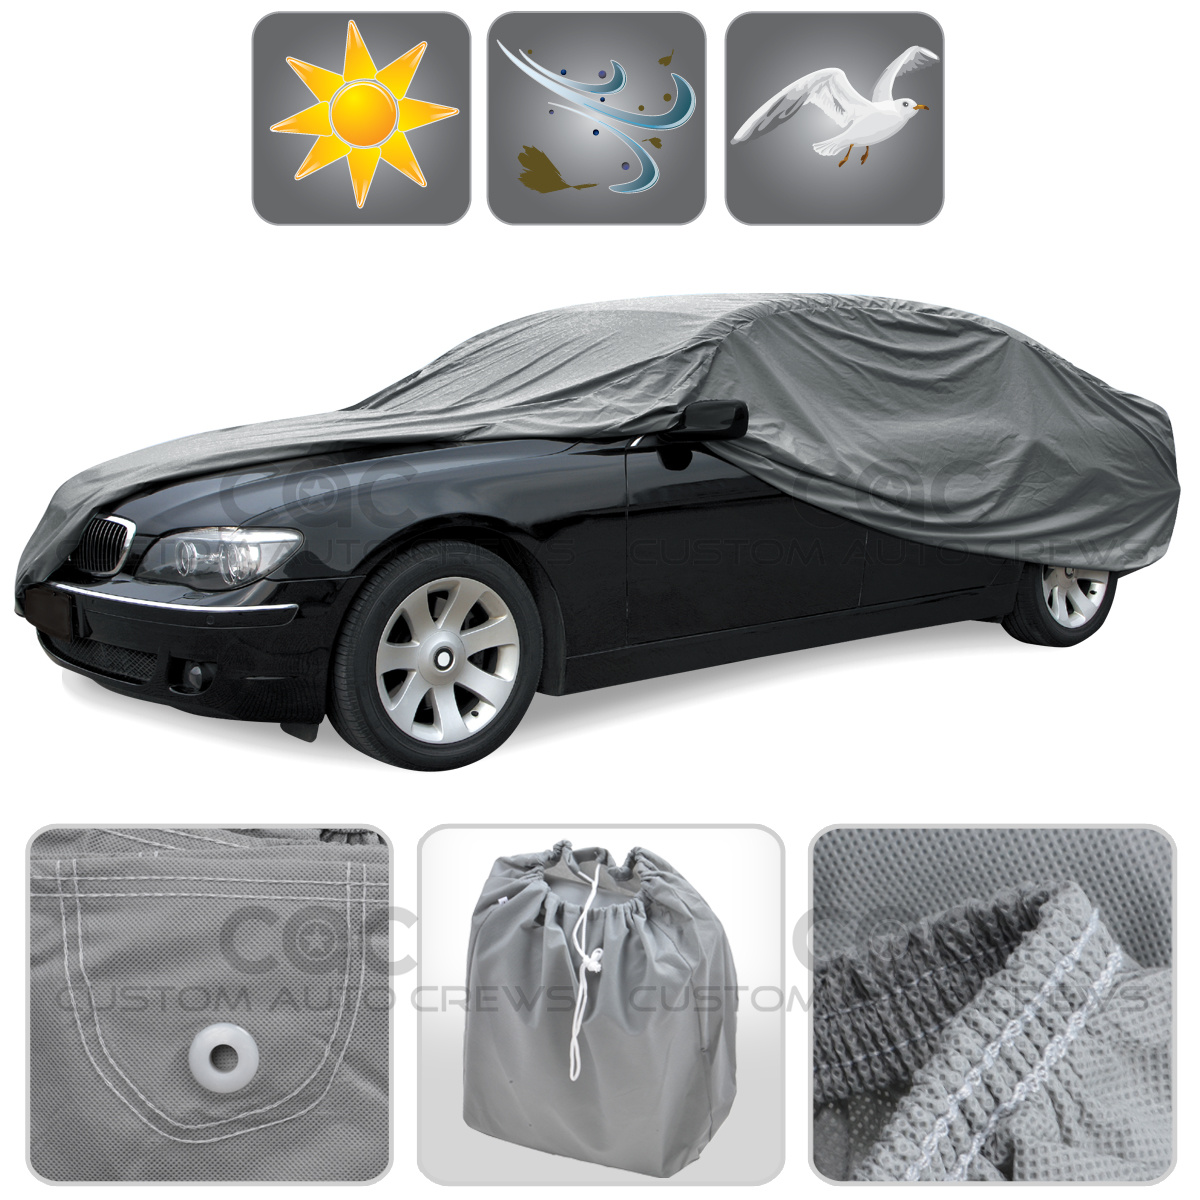 car cover for mazda miata sp sun dust proof breathable auto protection ebay. Black Bedroom Furniture Sets. Home Design Ideas